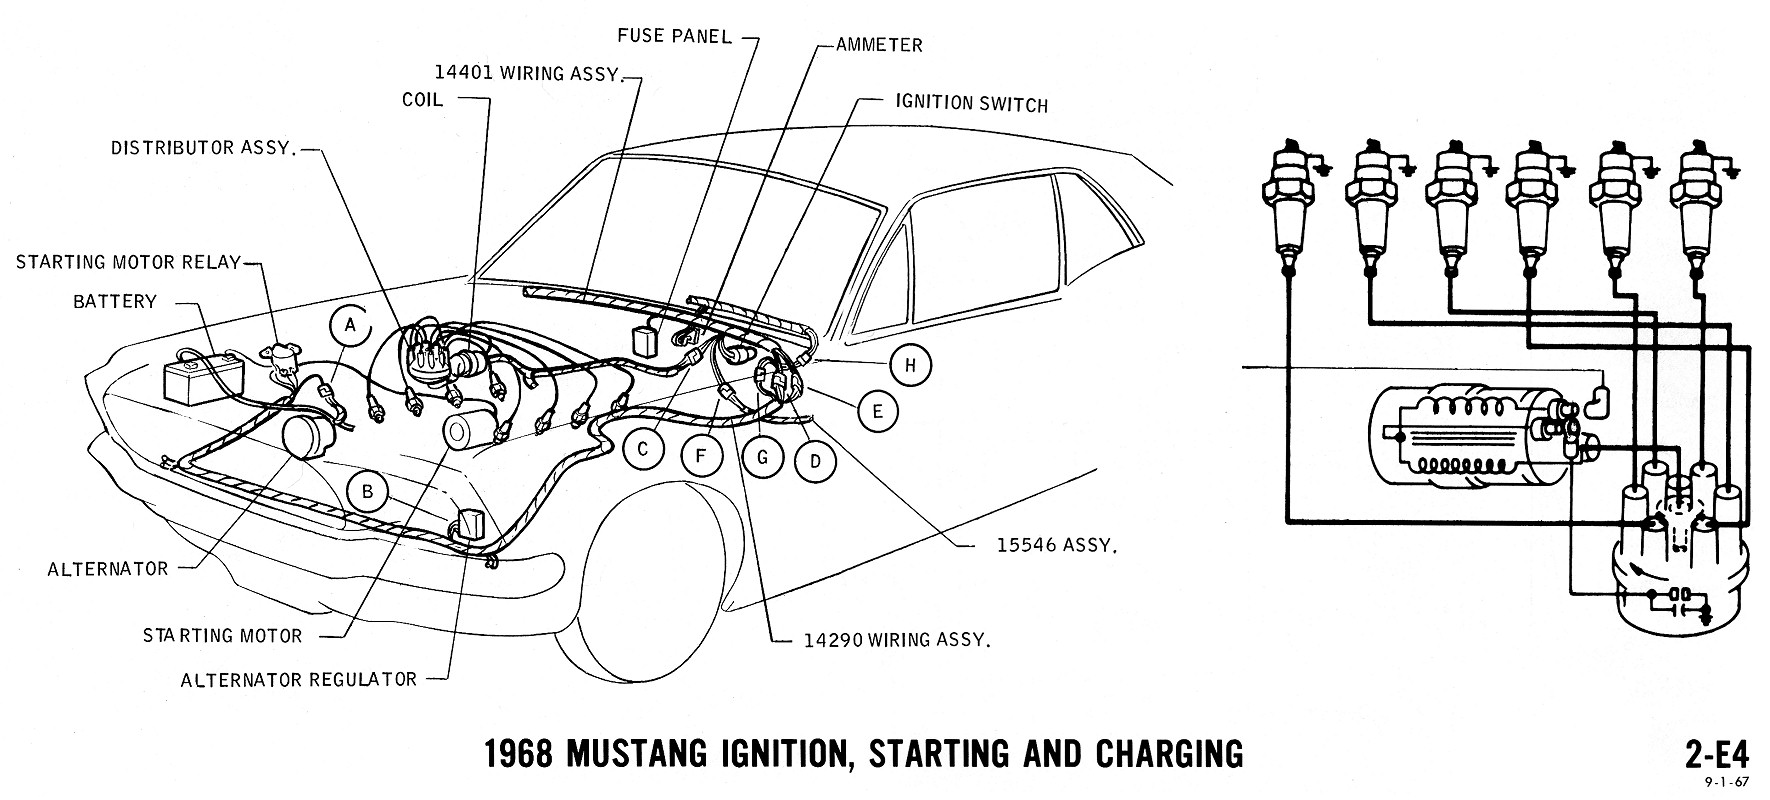 Mg Mgb Wiring Schematic Library 1973 Midget Diagram 1968 Mustang Diagrams And Vacuum Schematics 71 72